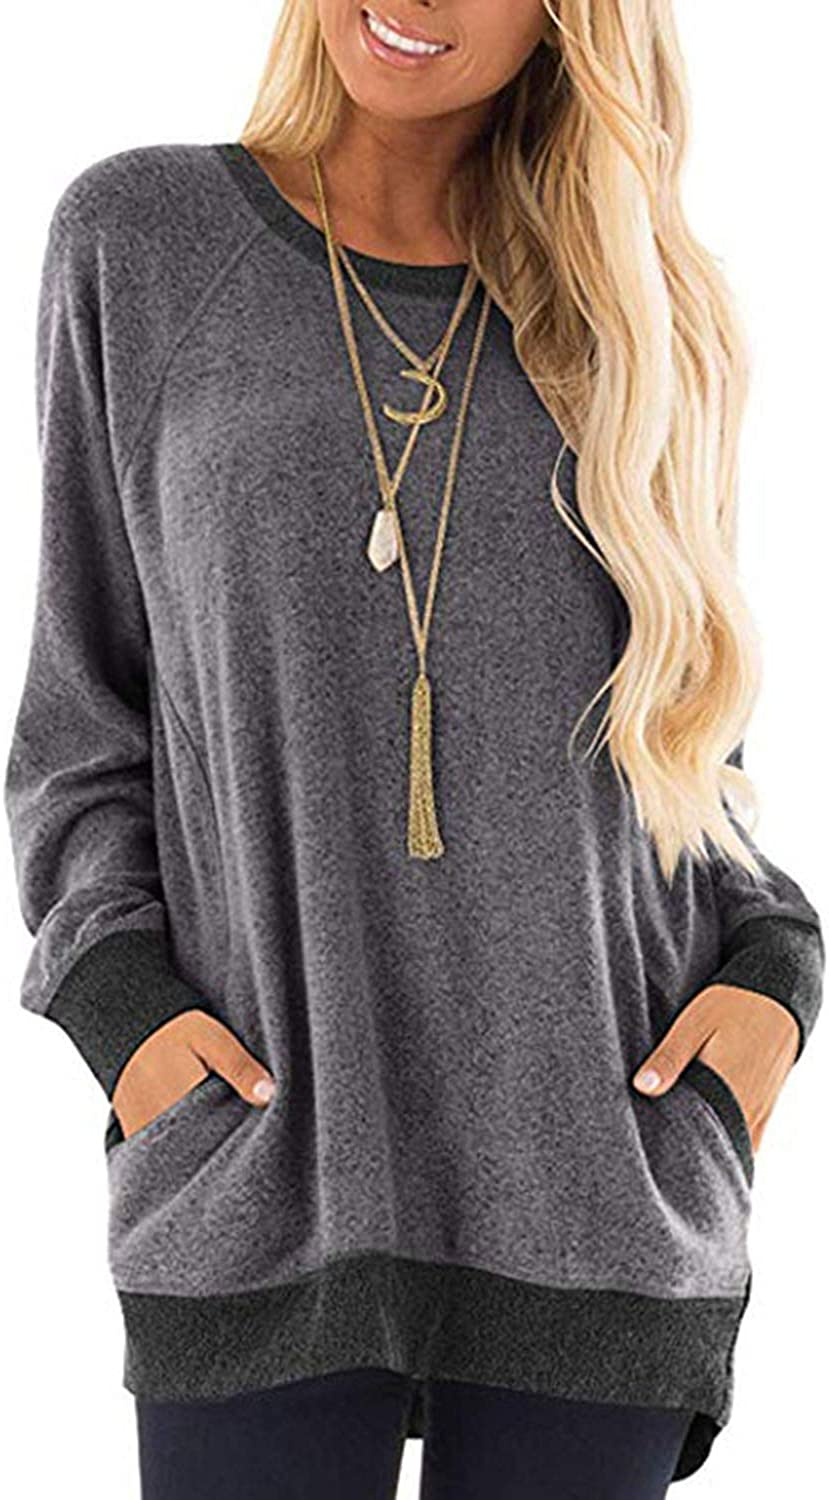 Womens Baggy Long Sleeve Sweatshirts Comfy Sweaters Color Block Blouses Tops T Shirts